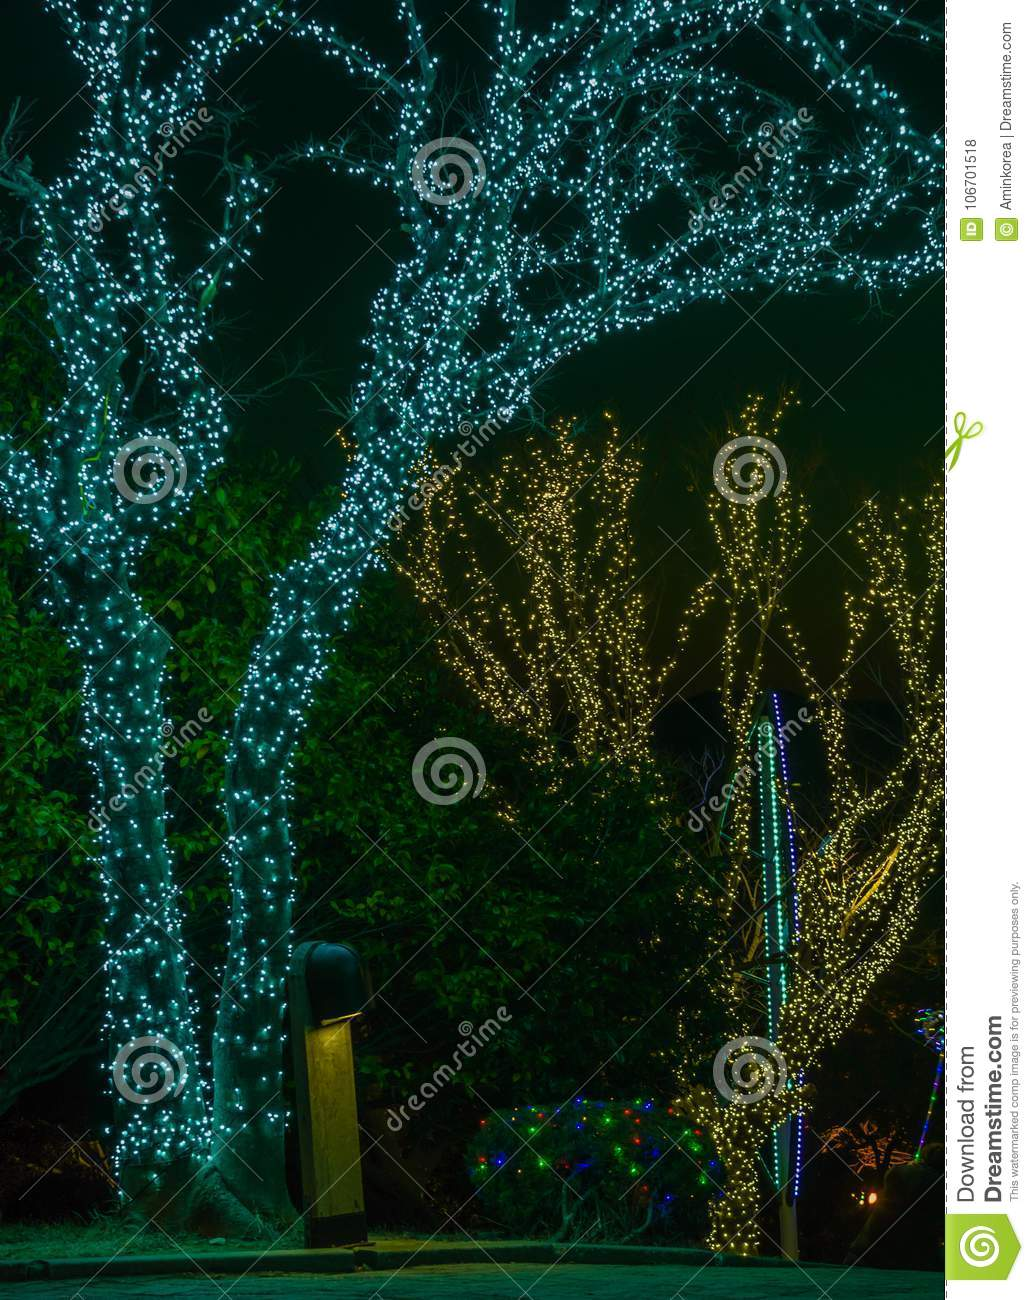 download christmas lights on trees stock photo image of creative 106701518